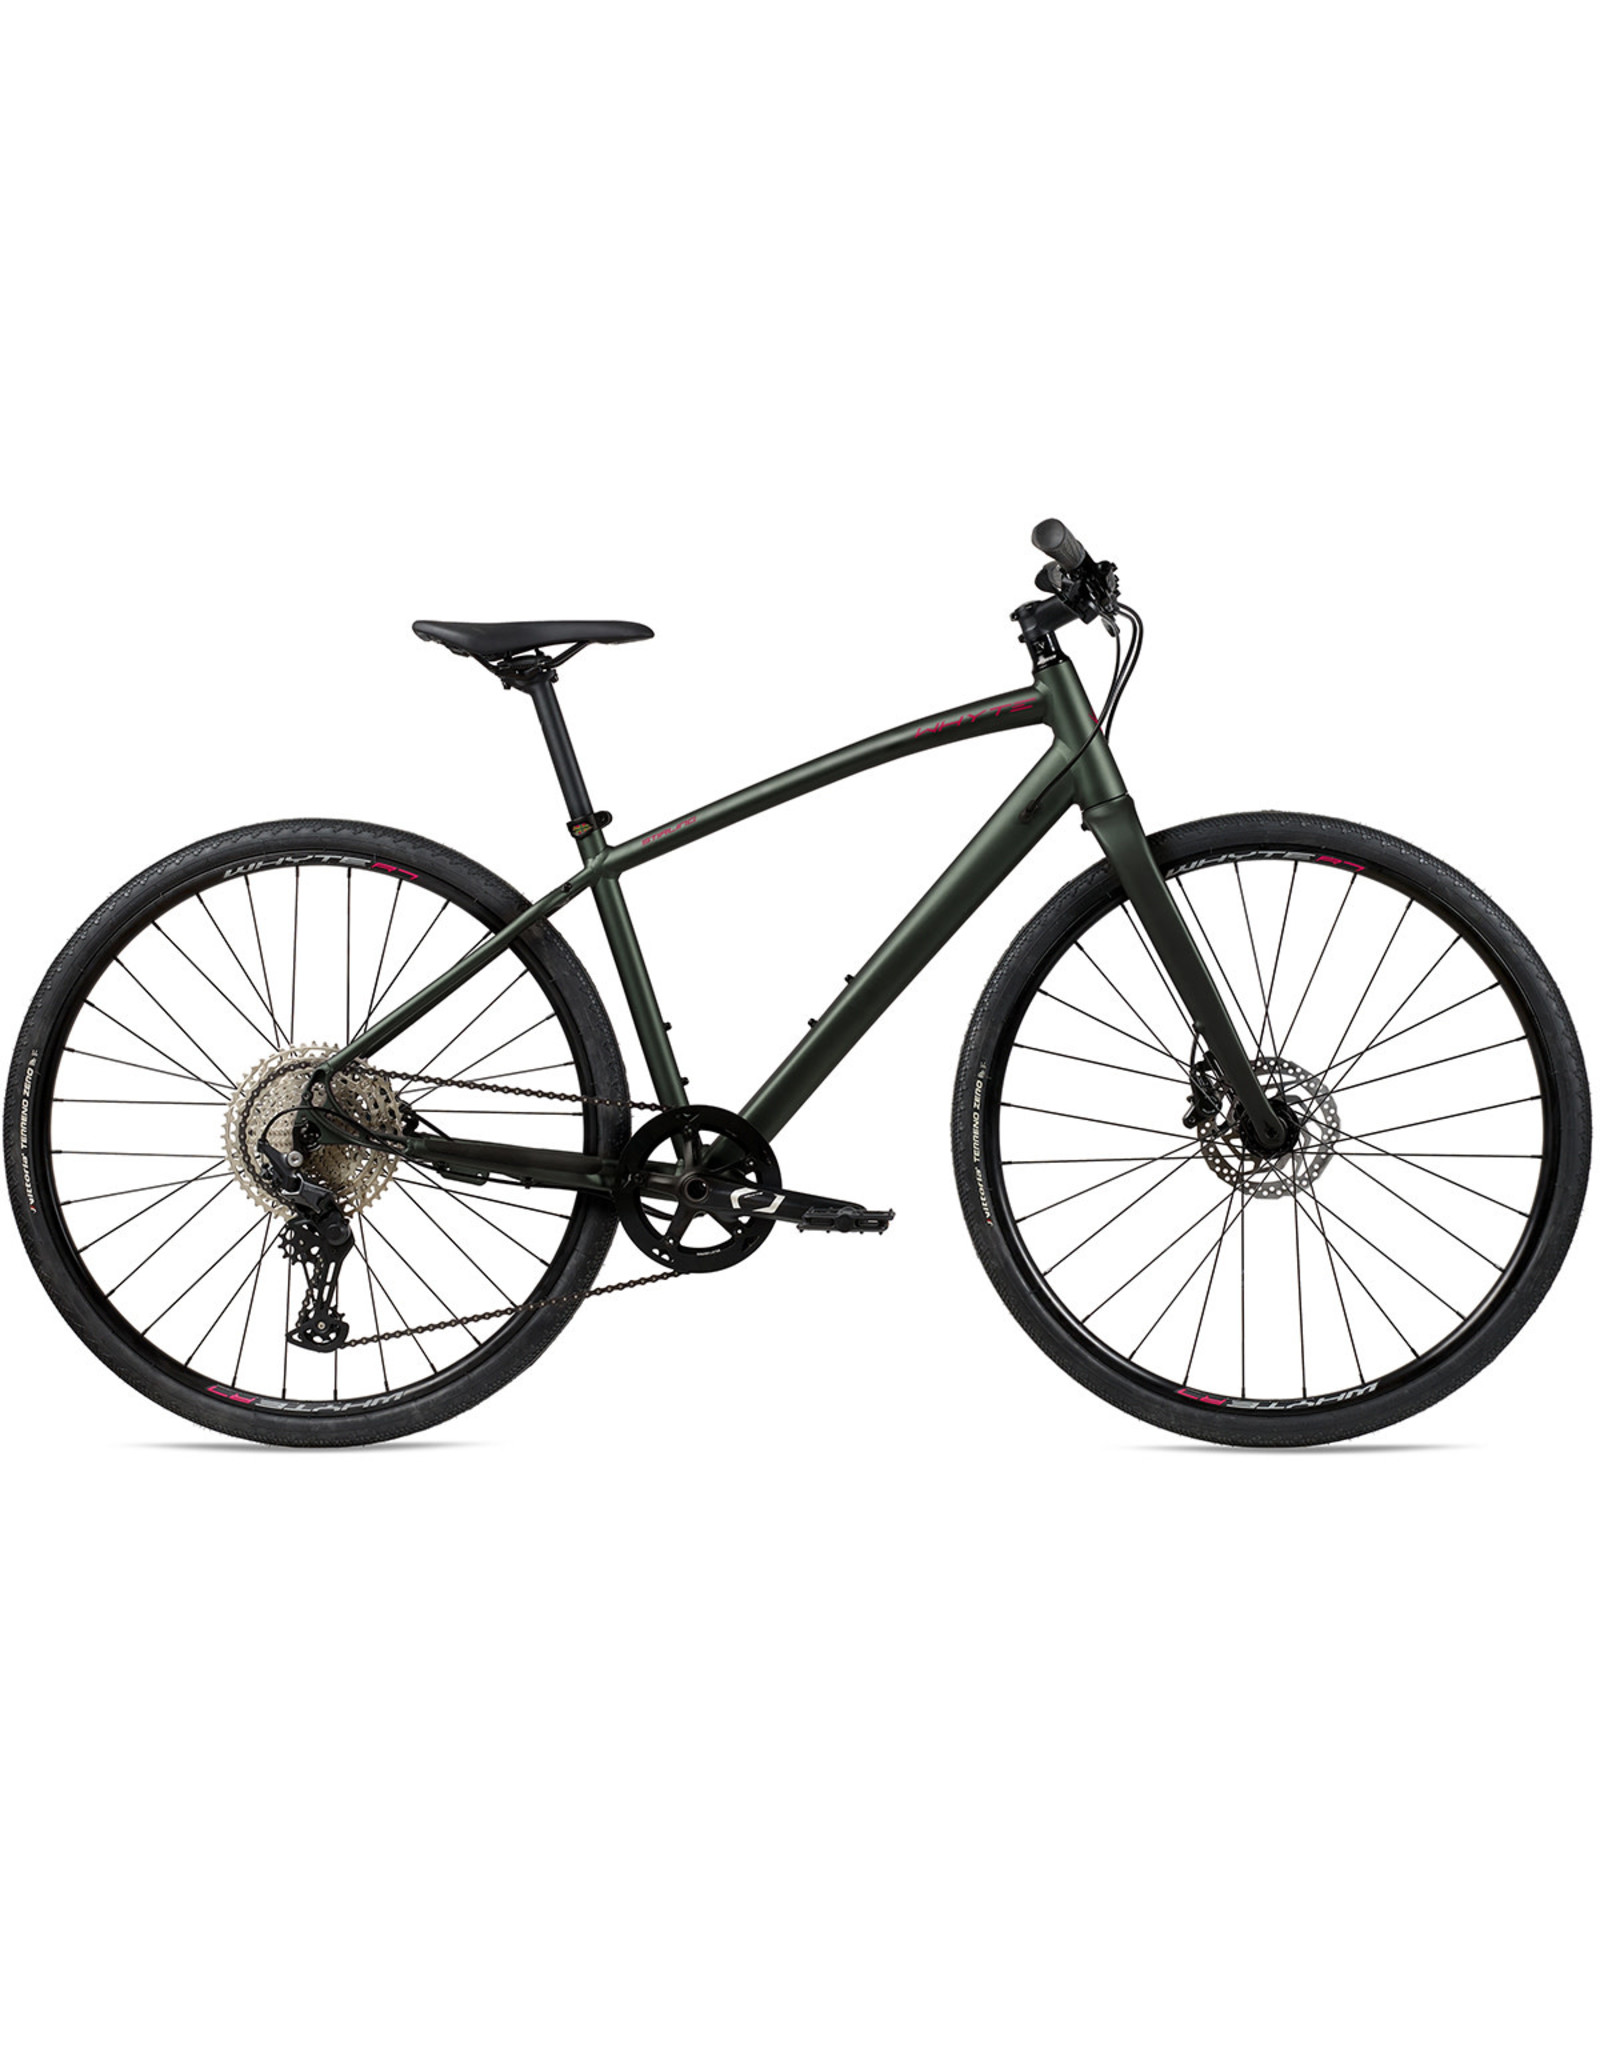 Whyte Stirling V2 Hybrid Bike 2021